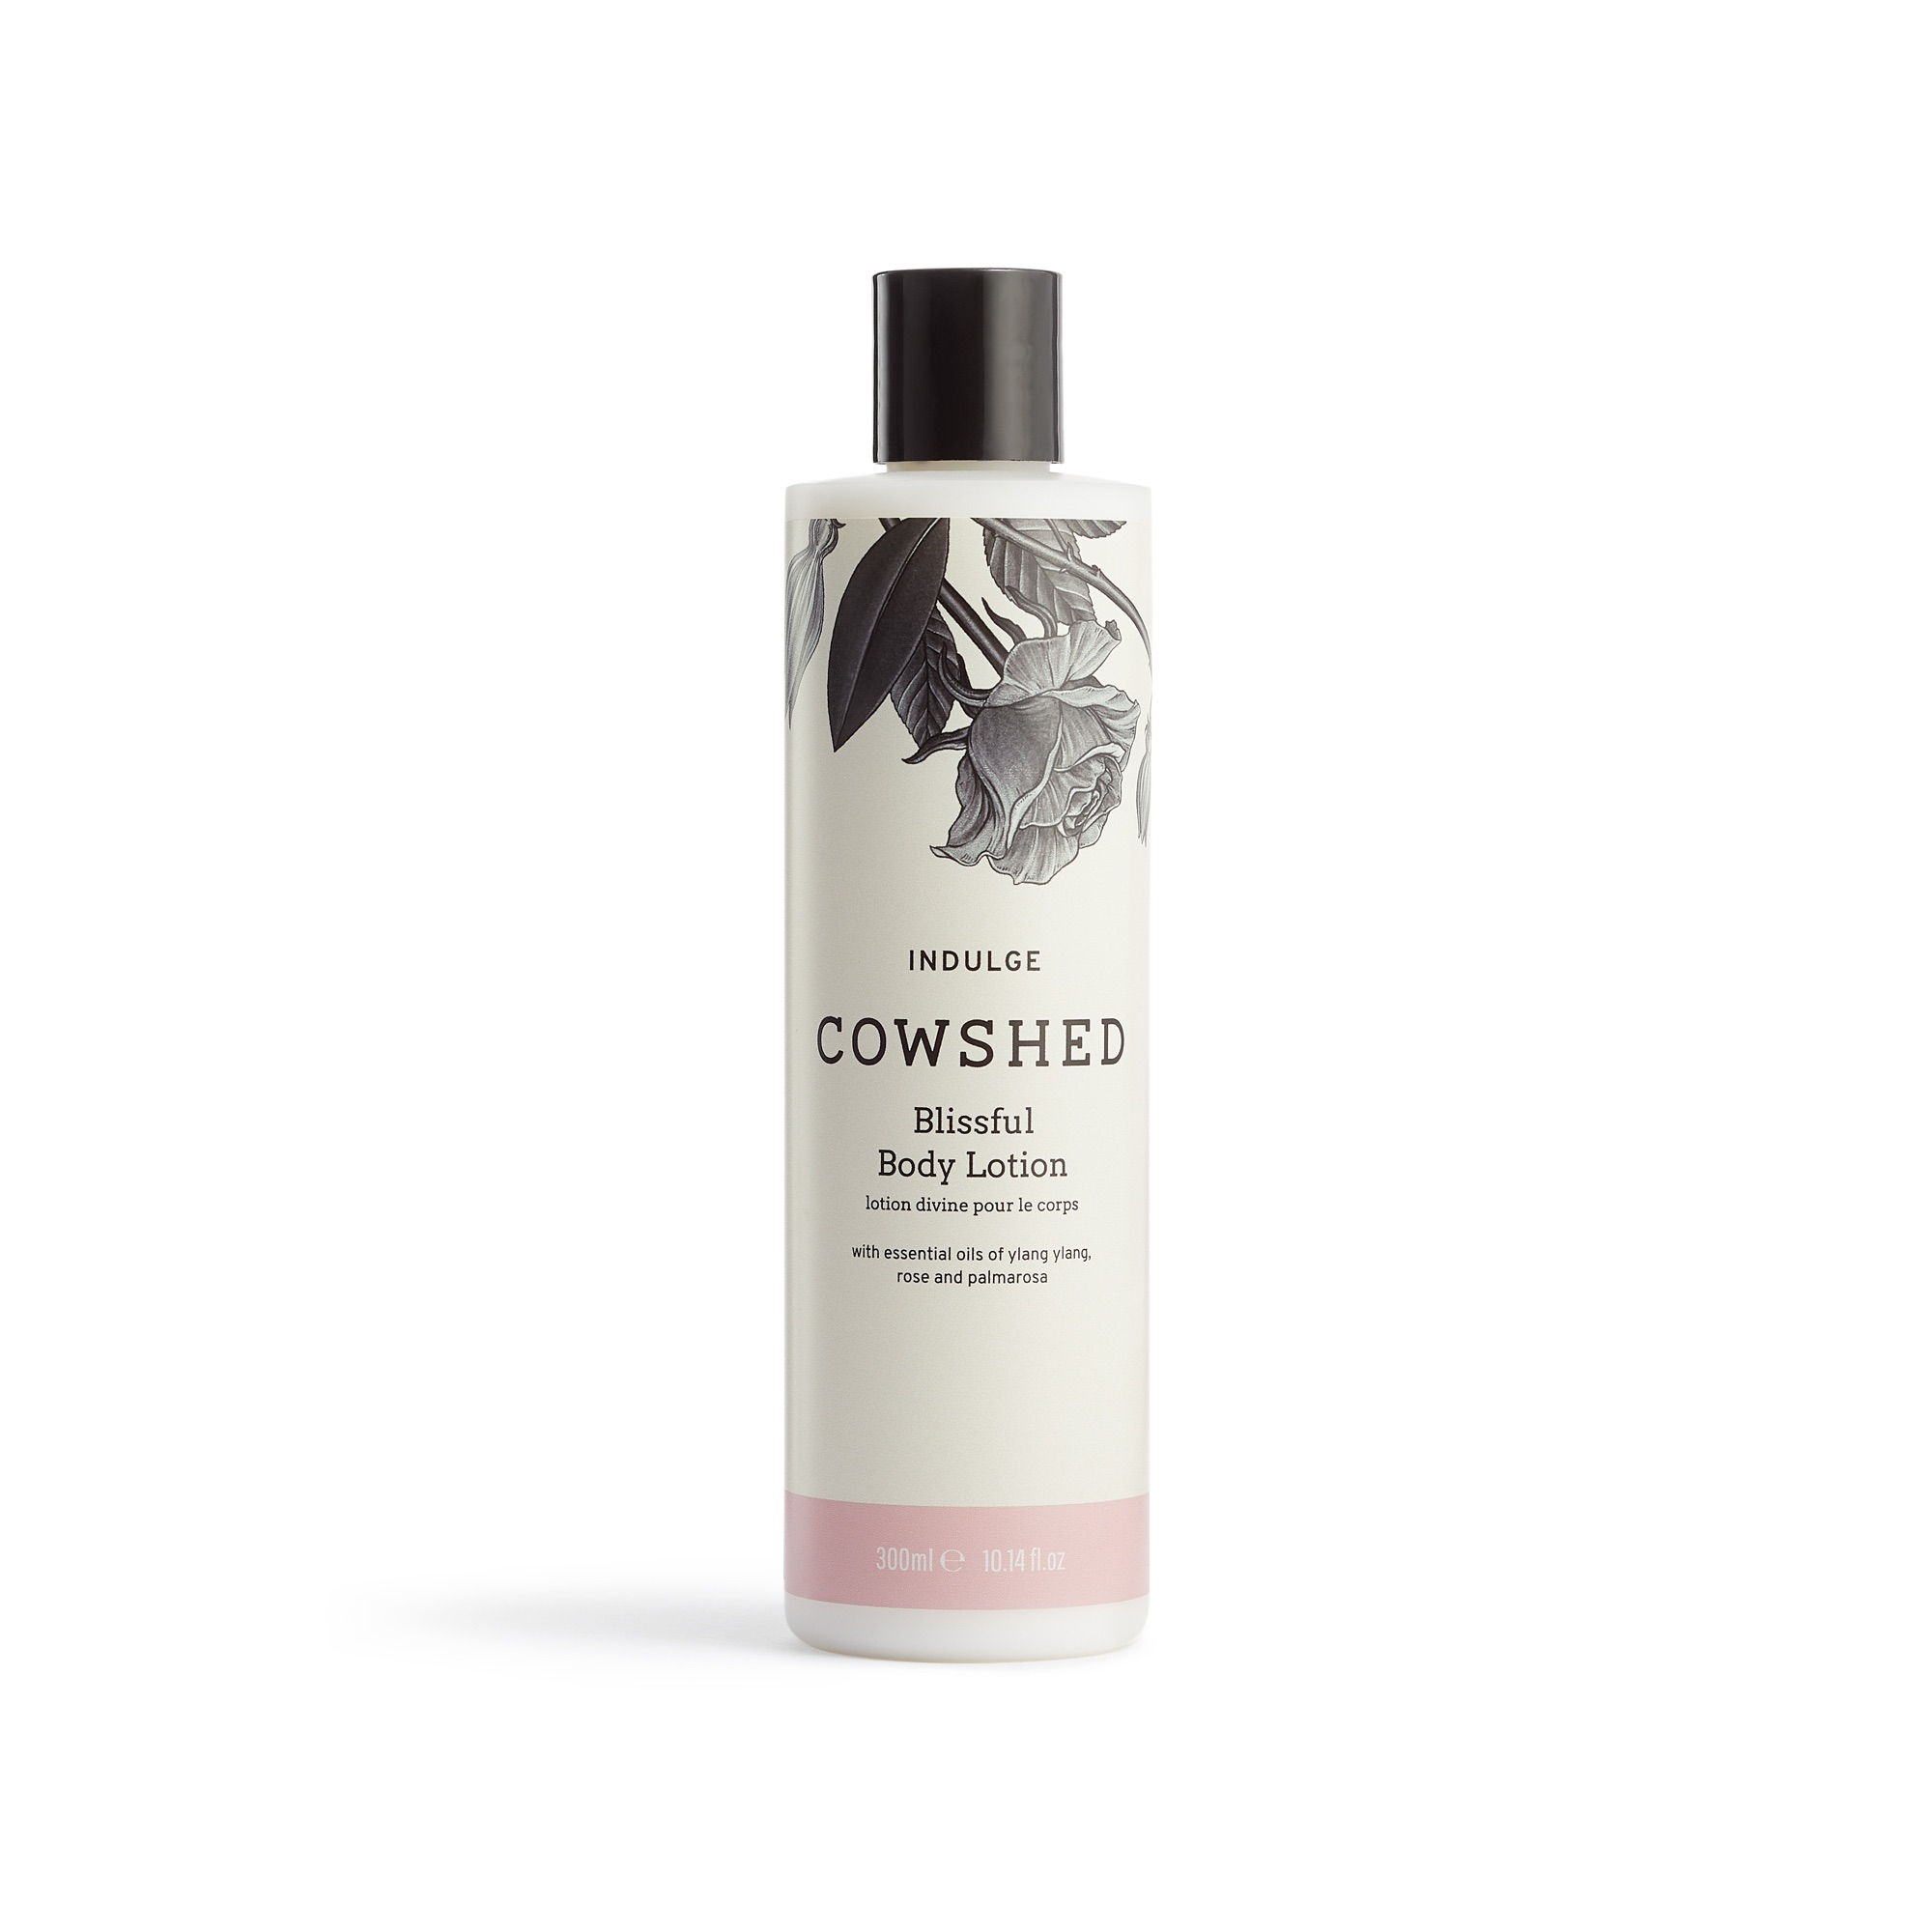 Cowshed INDULGE BLISSFUL Body Lotion 10.5oz (300ml)